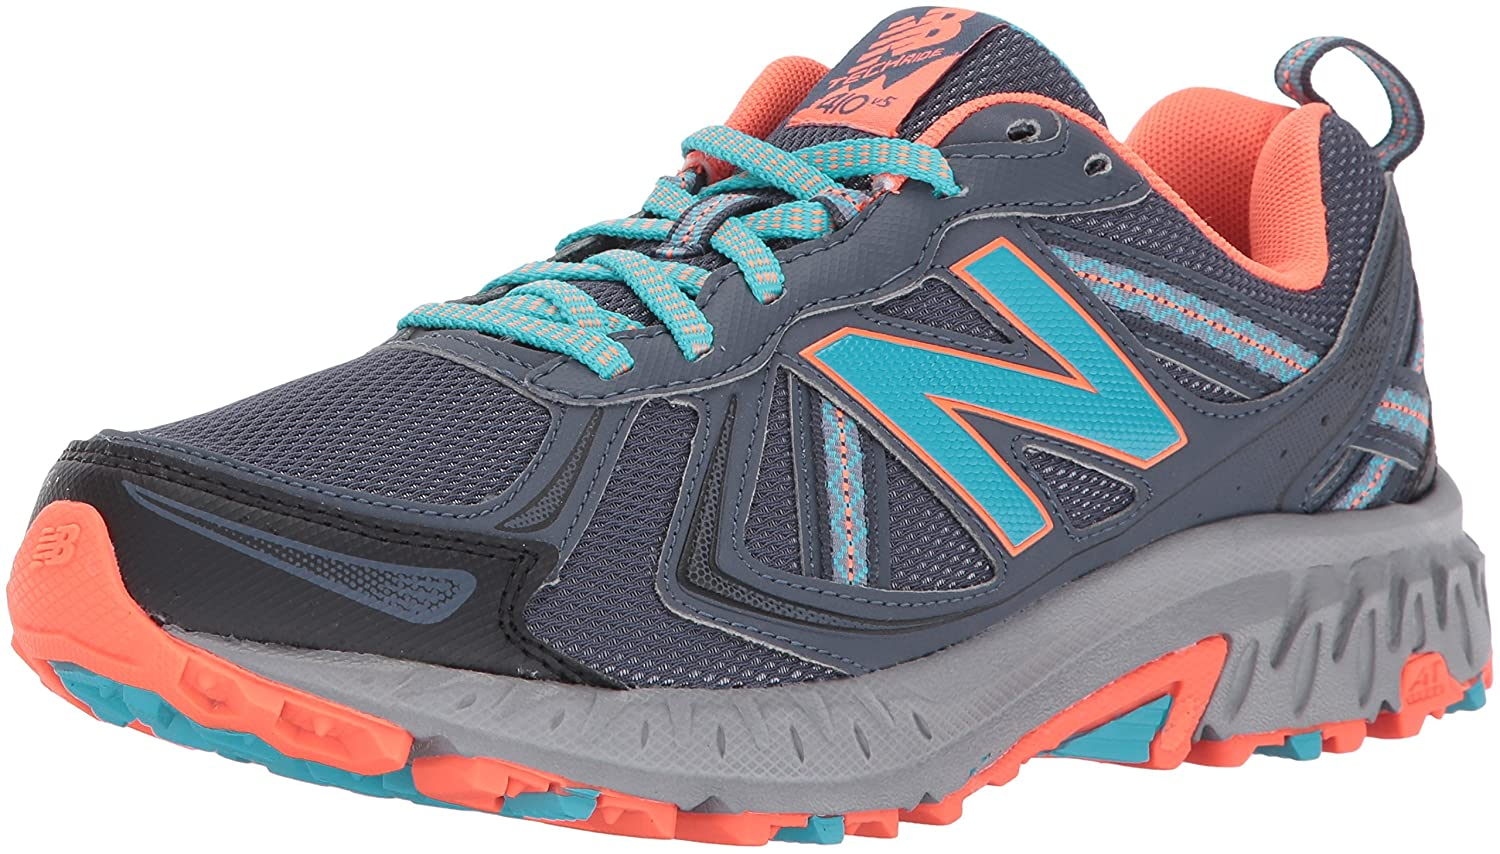 New Balance Women's WT410v5 Cushioning Trail Running Shoe B01LYFEMXH 7.5 D US|Dark Grey